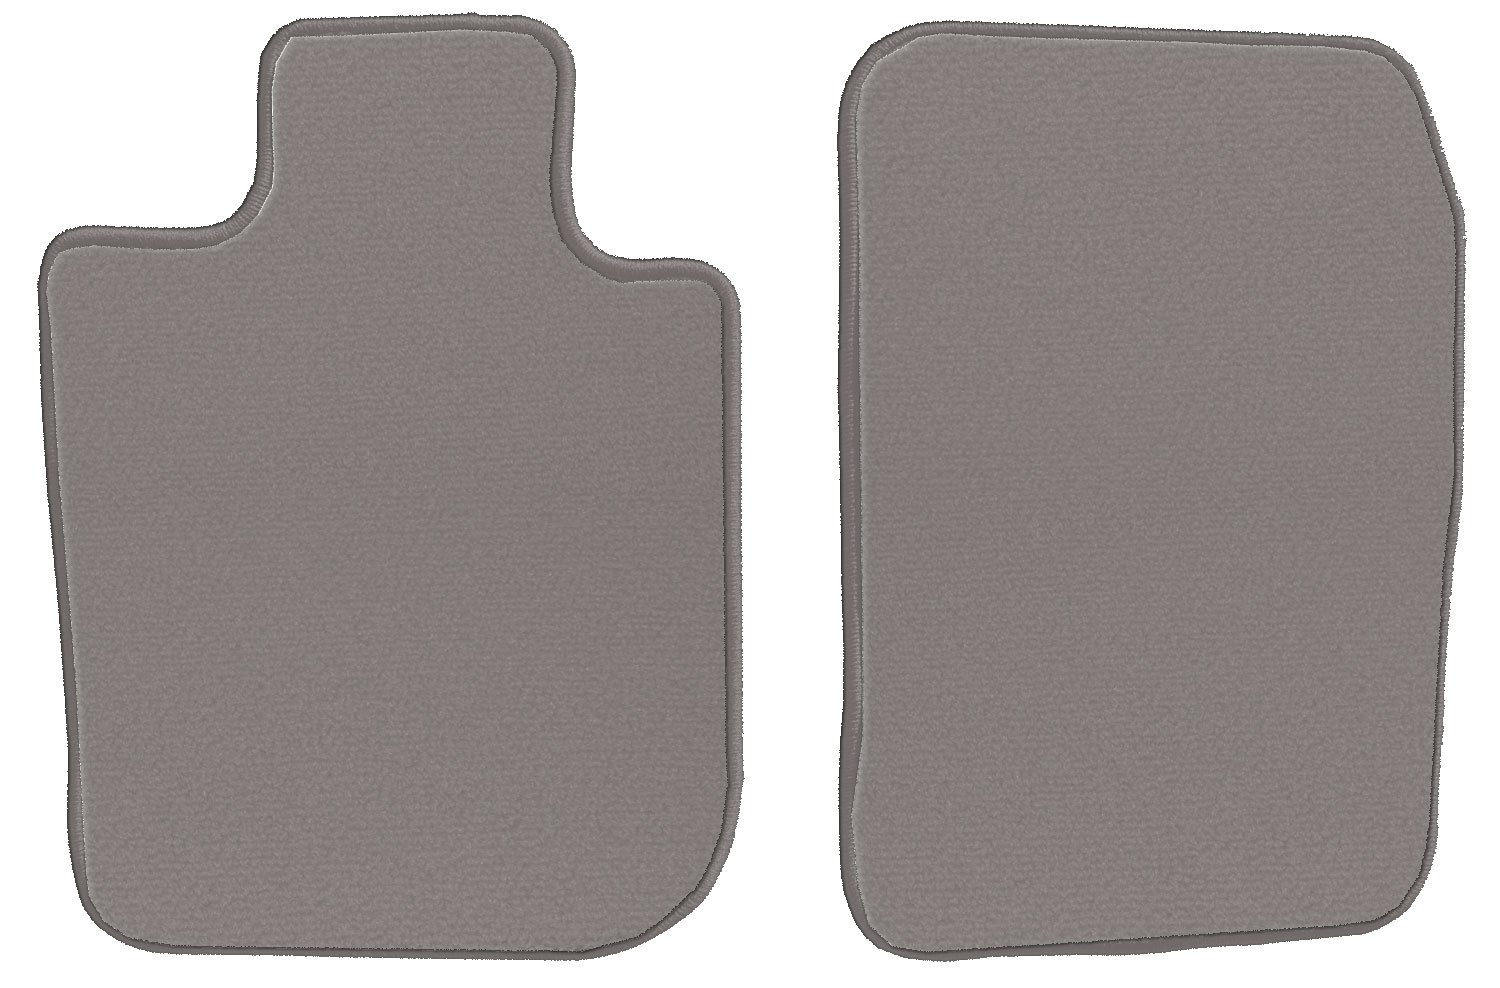 1999 2001 2002 GGBAILEY Dodge Durango 1998 2000 2003 Grey Loop Driver /& Passenger Floor Mats